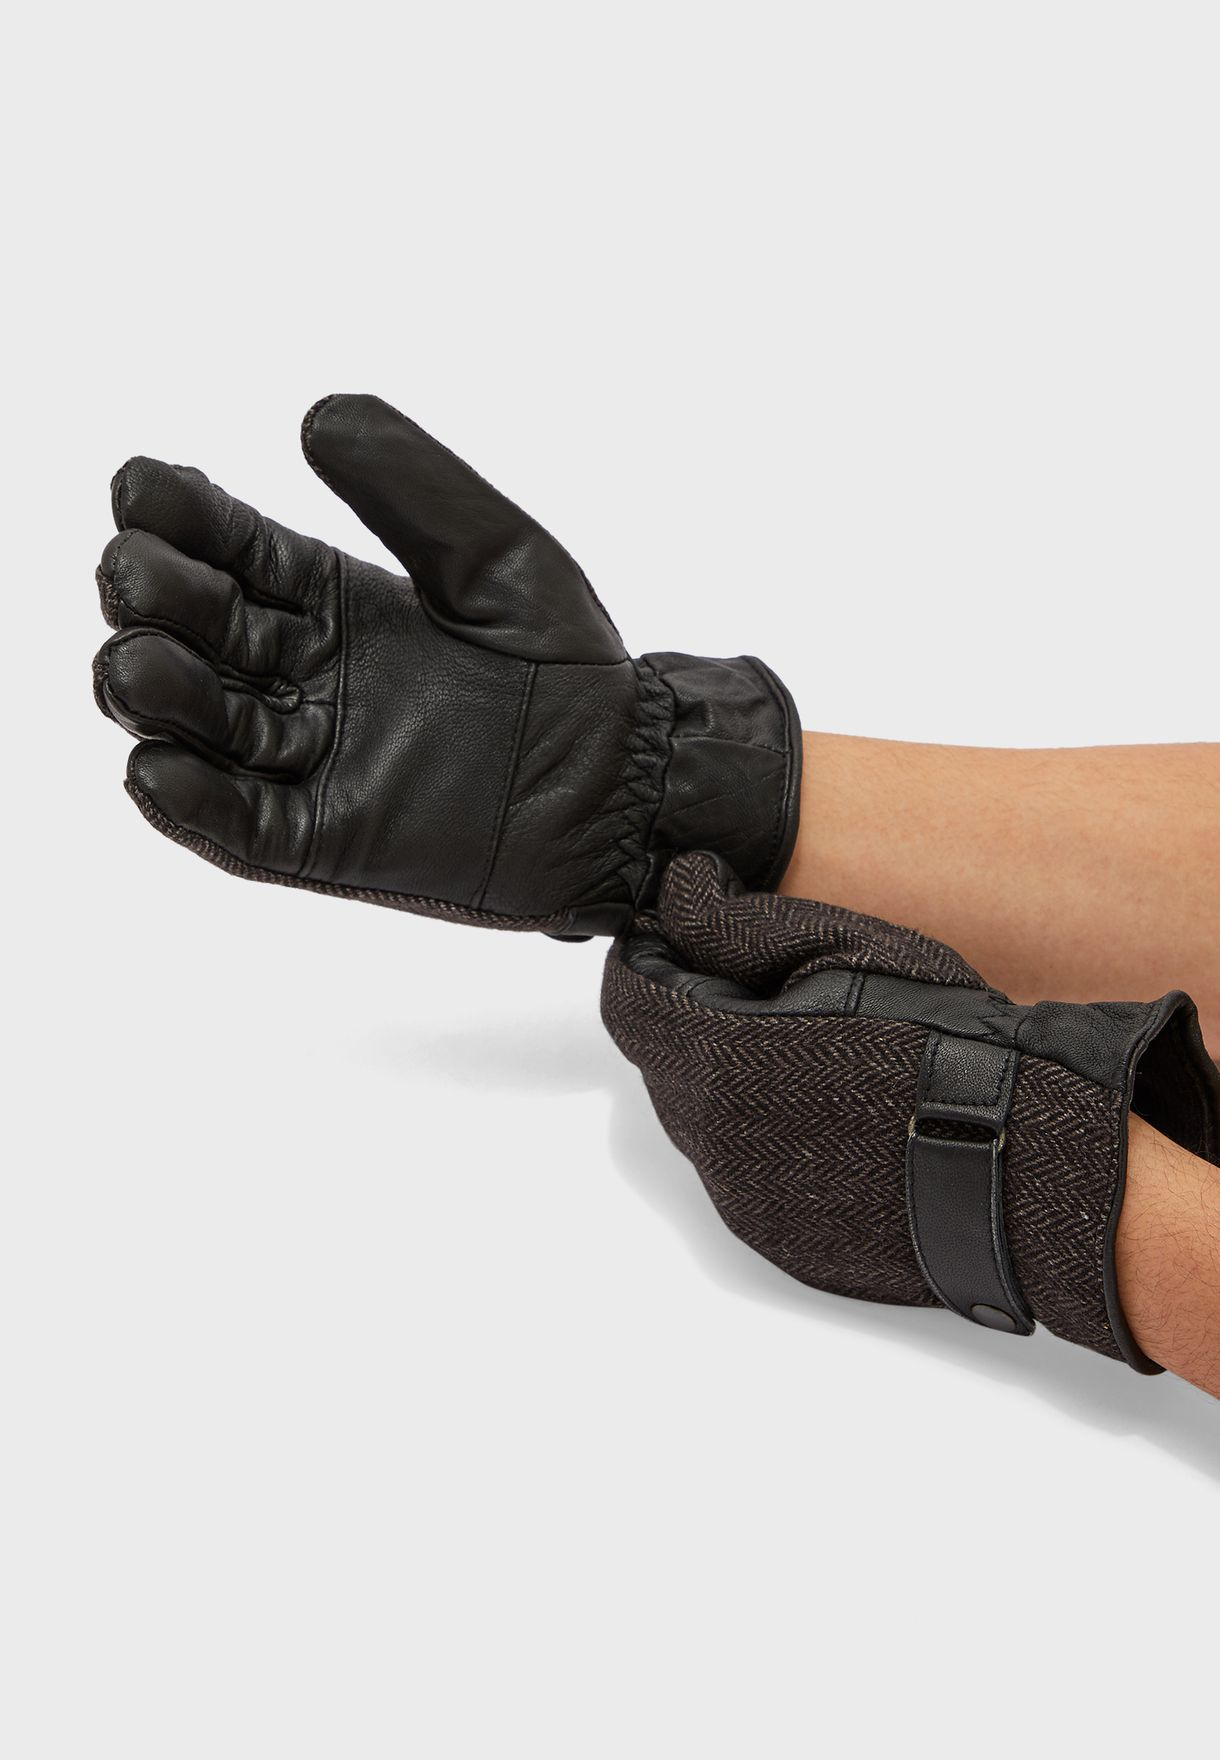 MEN'S TWEED LEATHER GLOVES